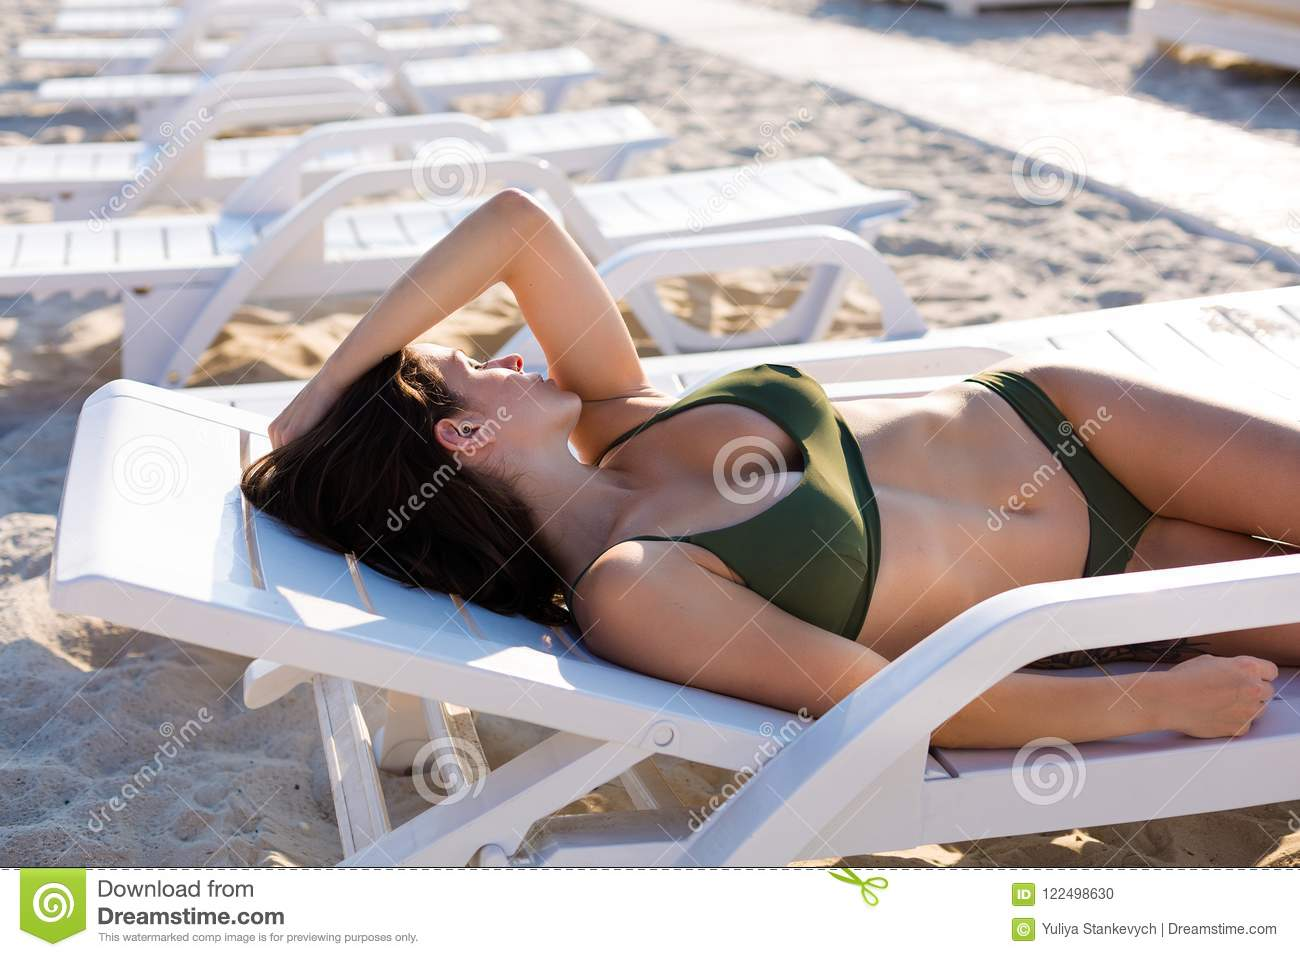 ea670a0a89 Woman tanning on the beach stock photo. Image of leisure - 122498630